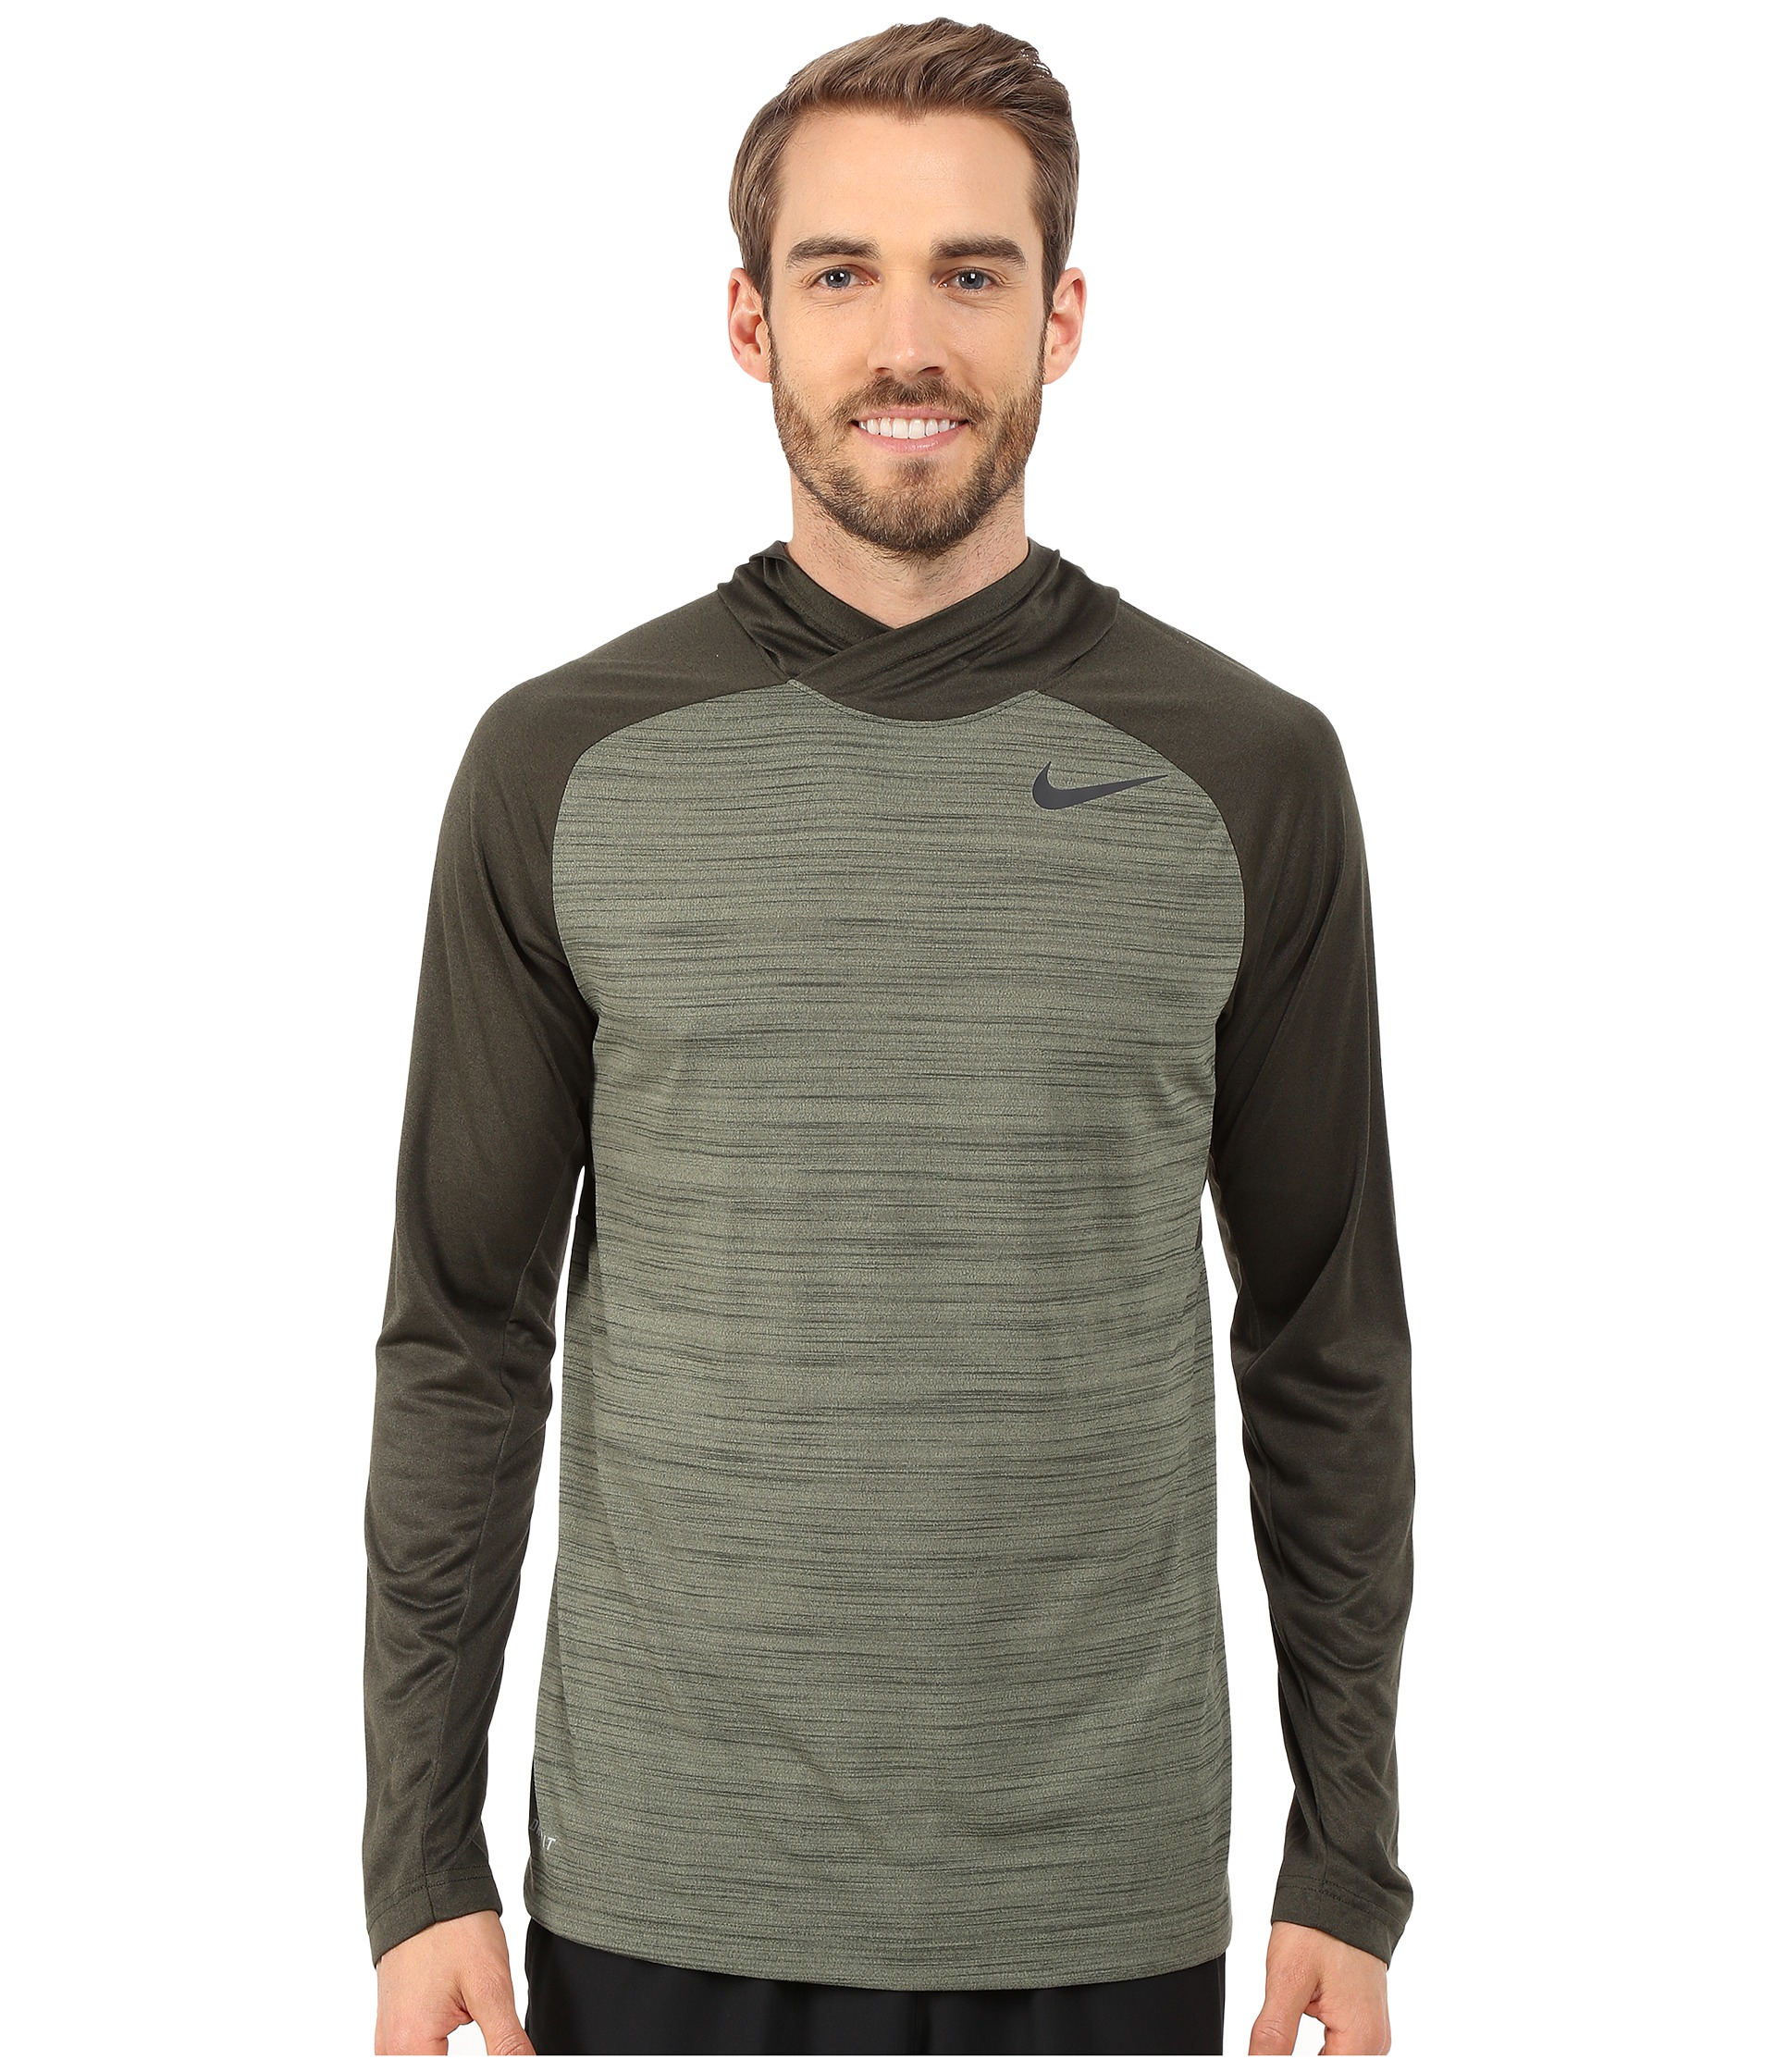 Lyst - Nike Dri-fit™ Touch Long Sleeve Hoodie in Green for Men bd0e727ef